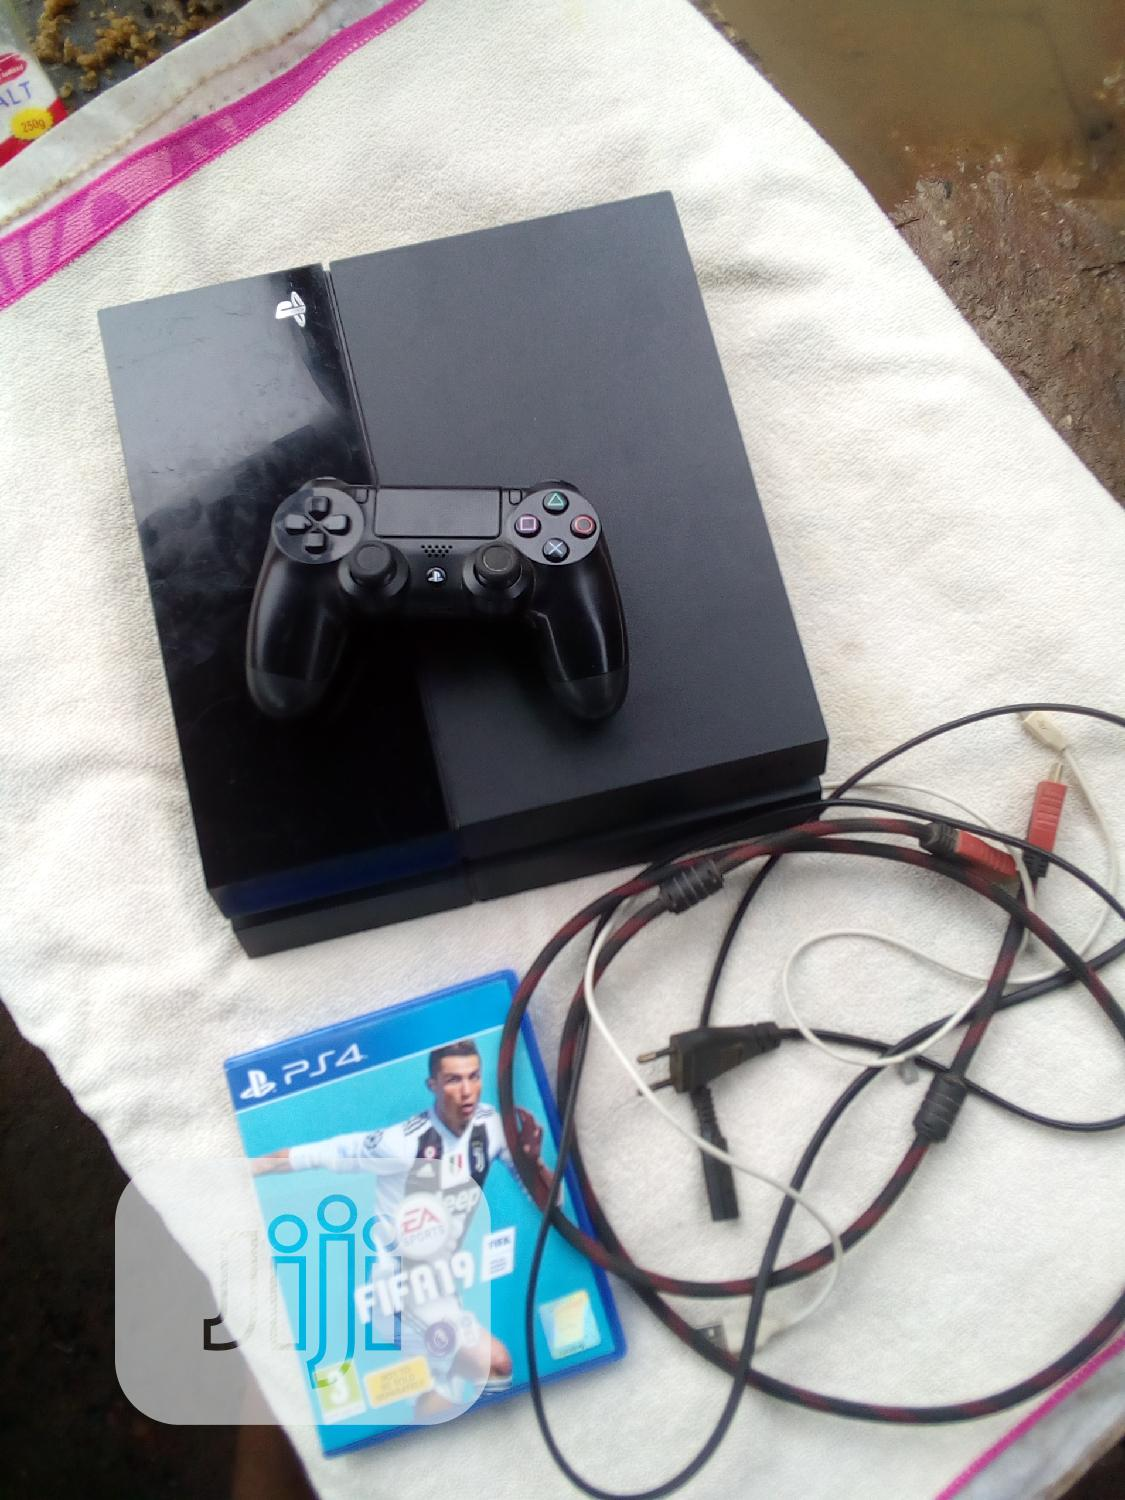 Ps4+Pad+Power Cable+Games